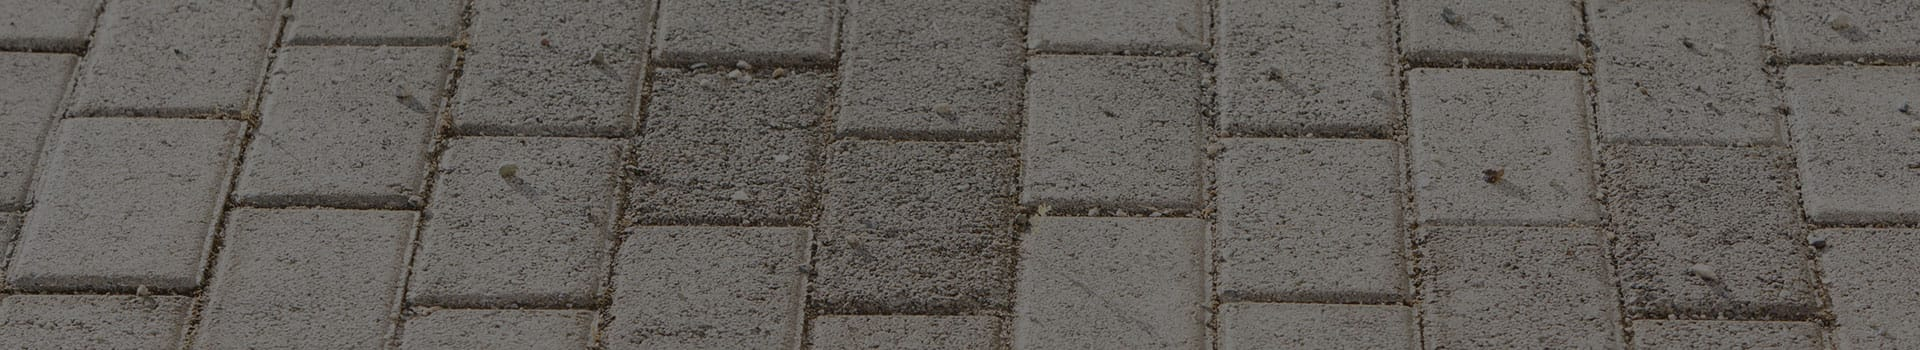 Interlock/Pavers